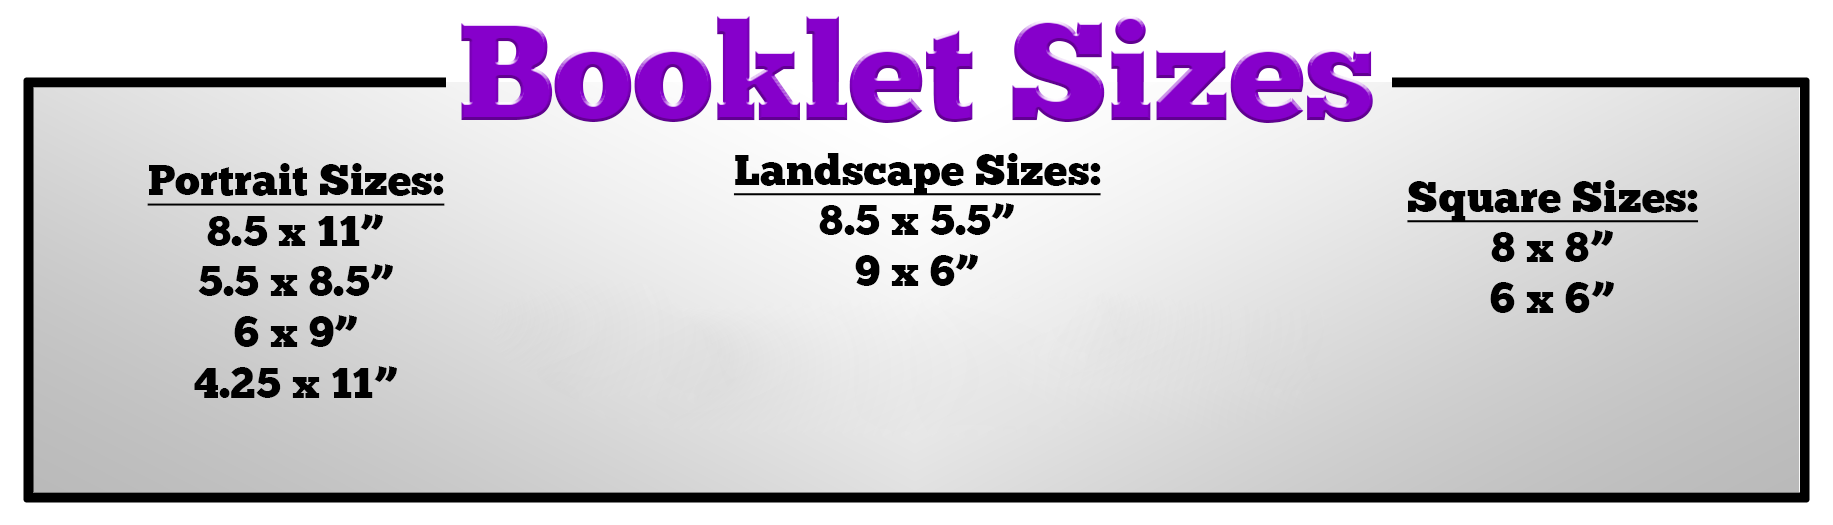 Booklet Printing Sizes